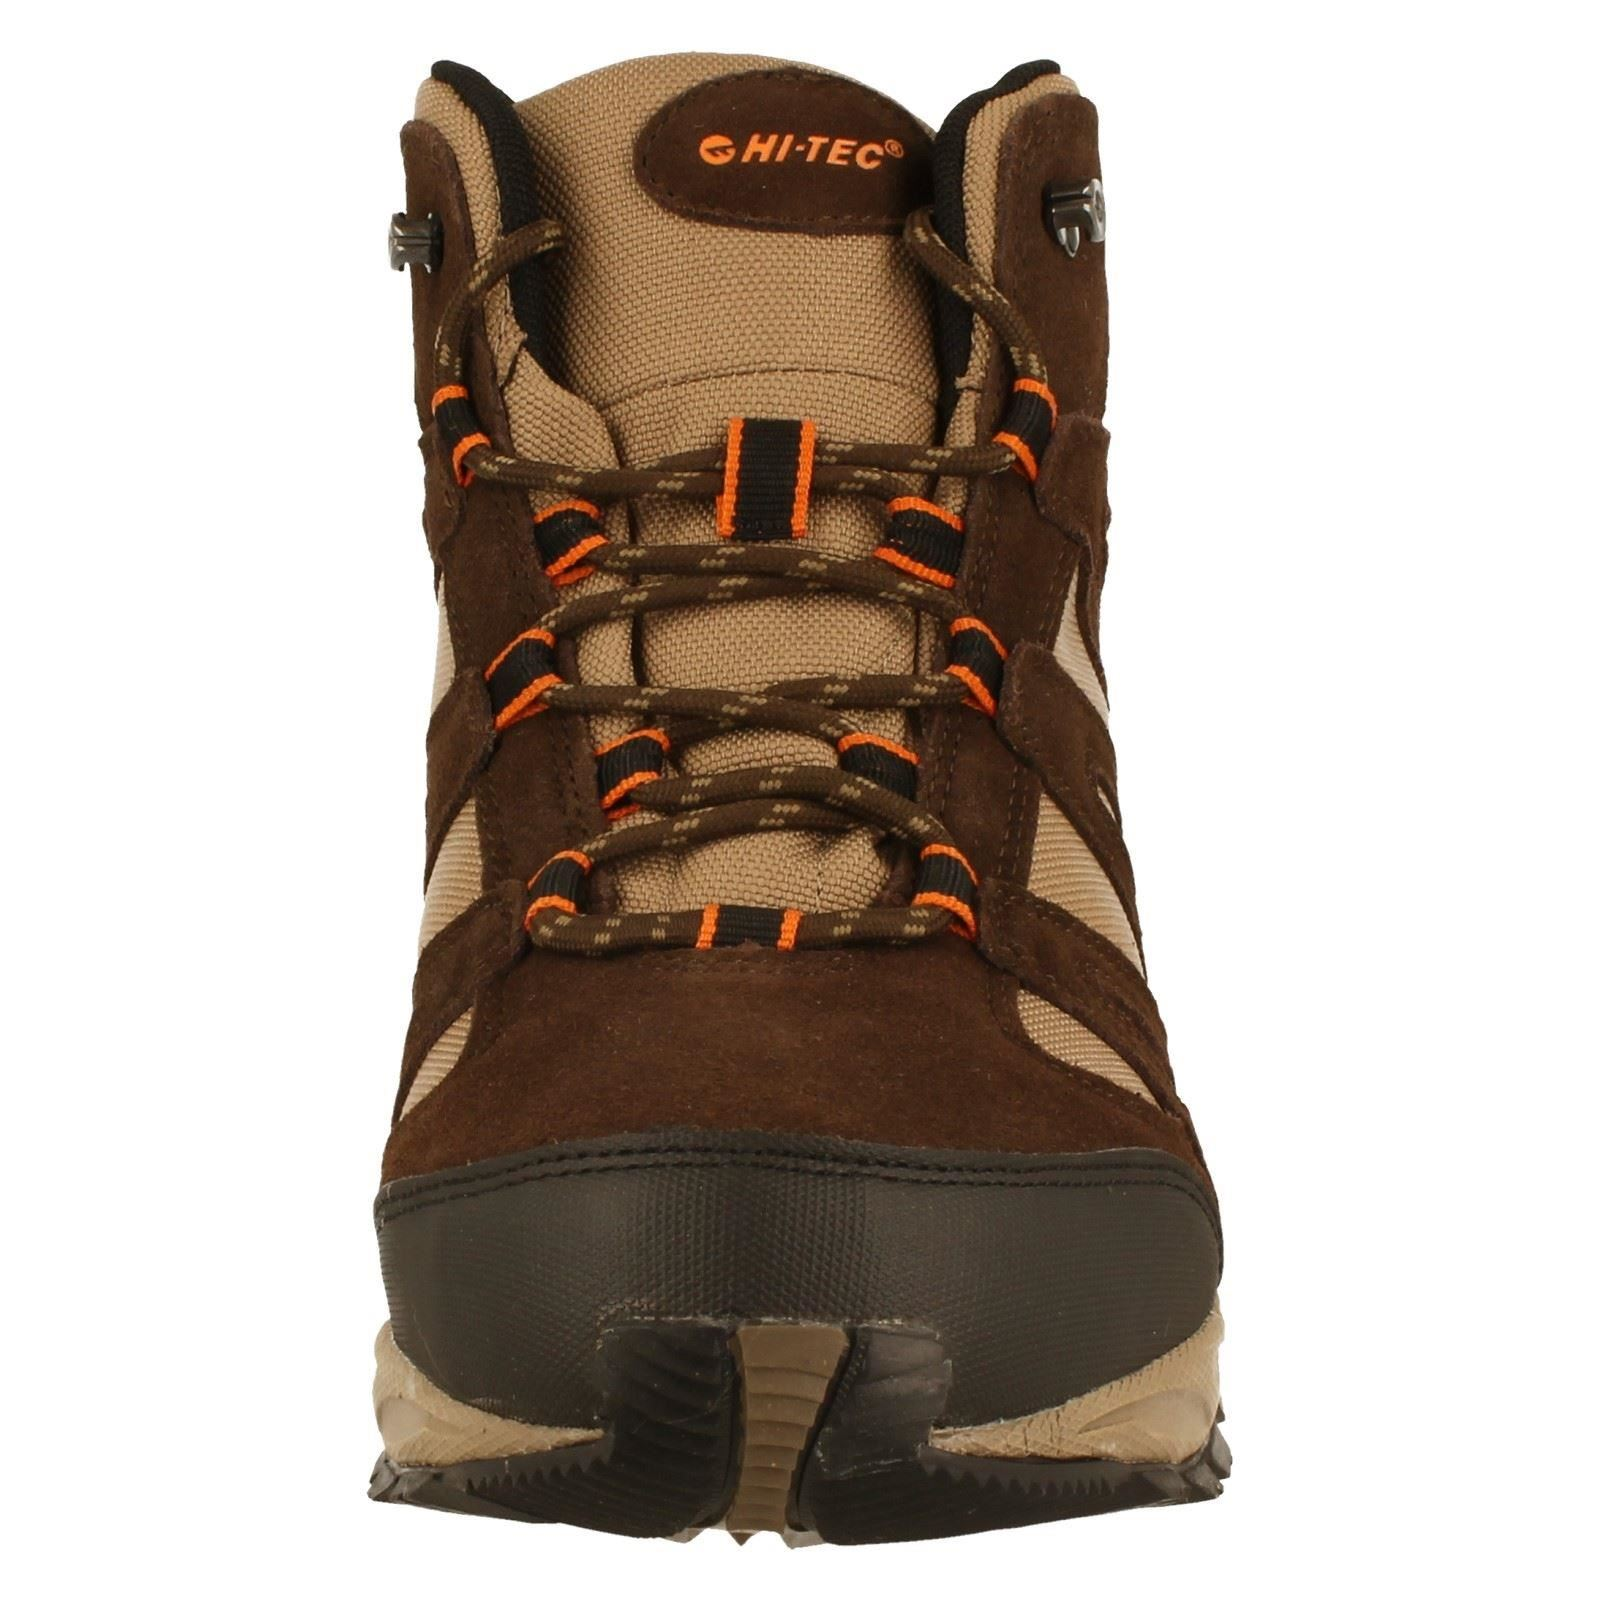 w b Walking Mid The stivali tec taupe orange Alto Wp Hi Uomo Style Chocolate Dark w6zRaRq